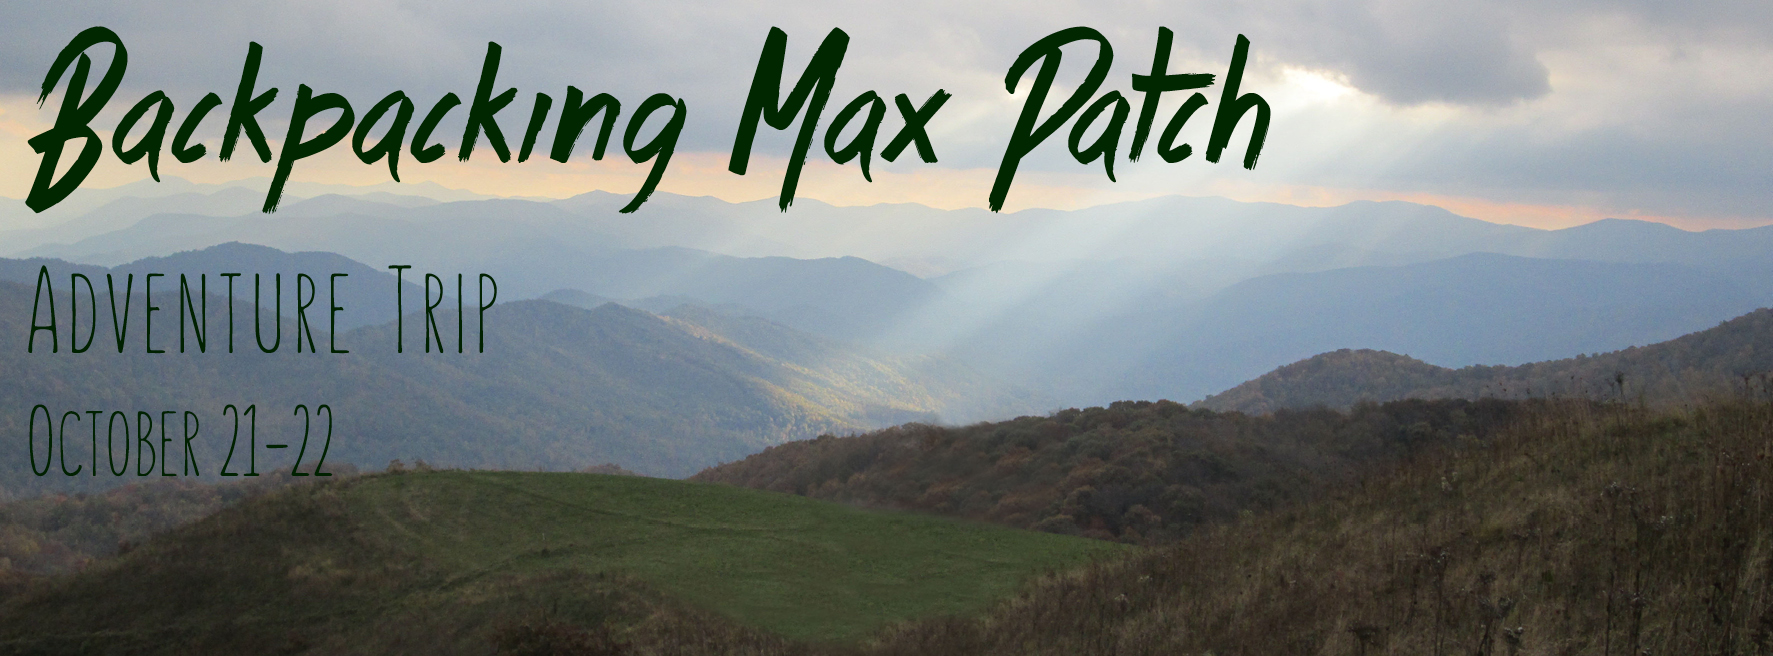 backpacking max patch bald adventure trip